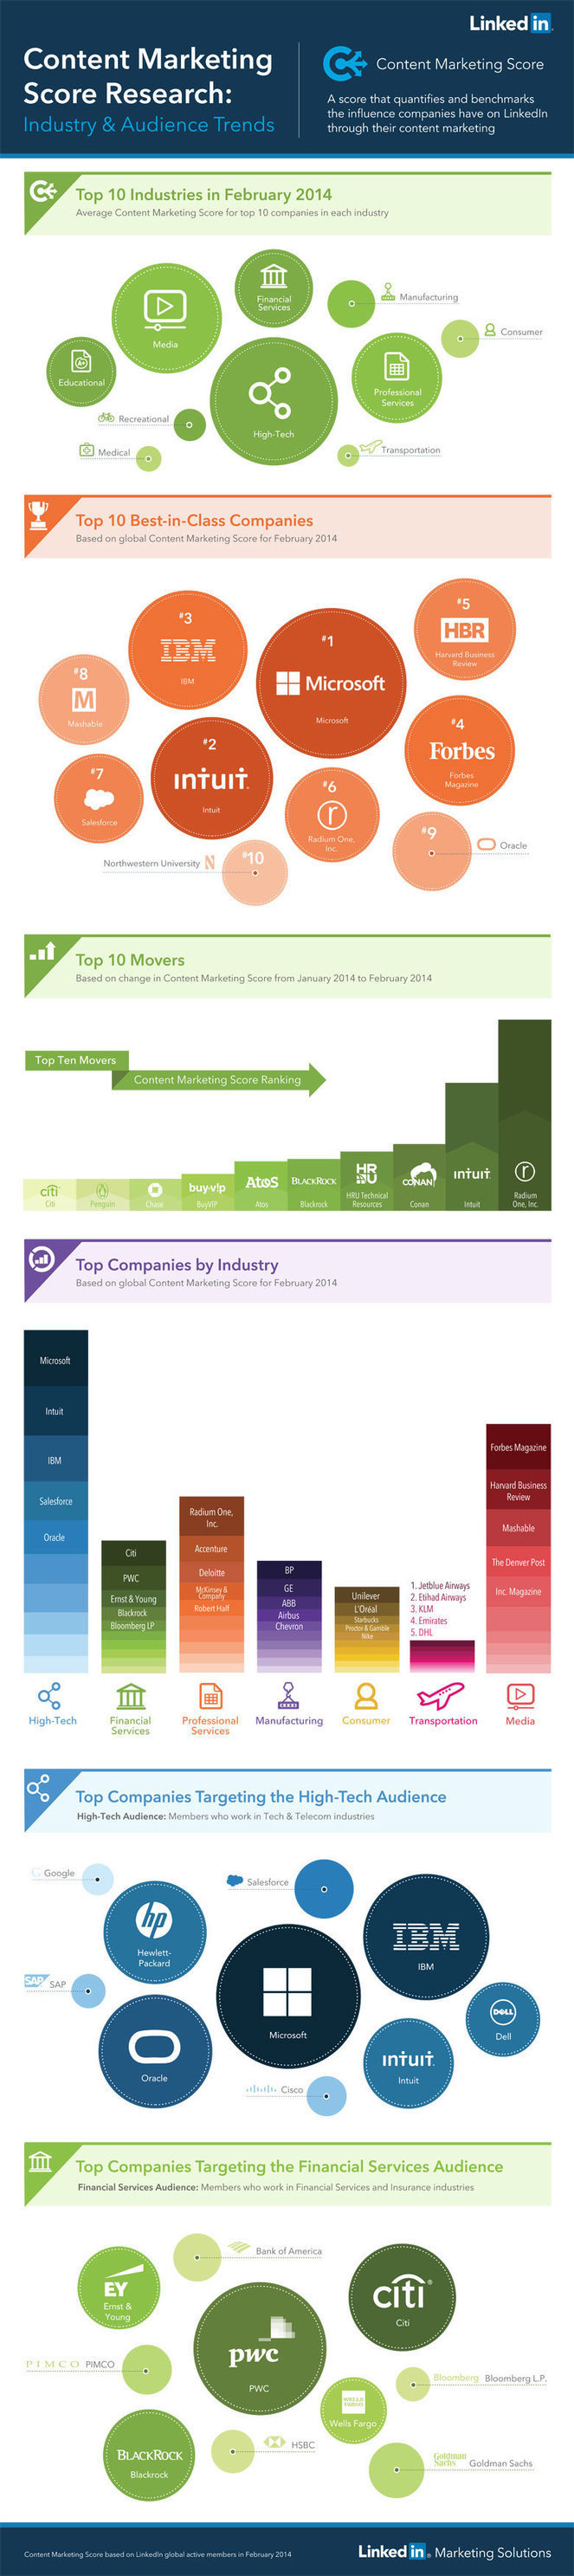 LinkedIn Content Marketing Score Industry and A...